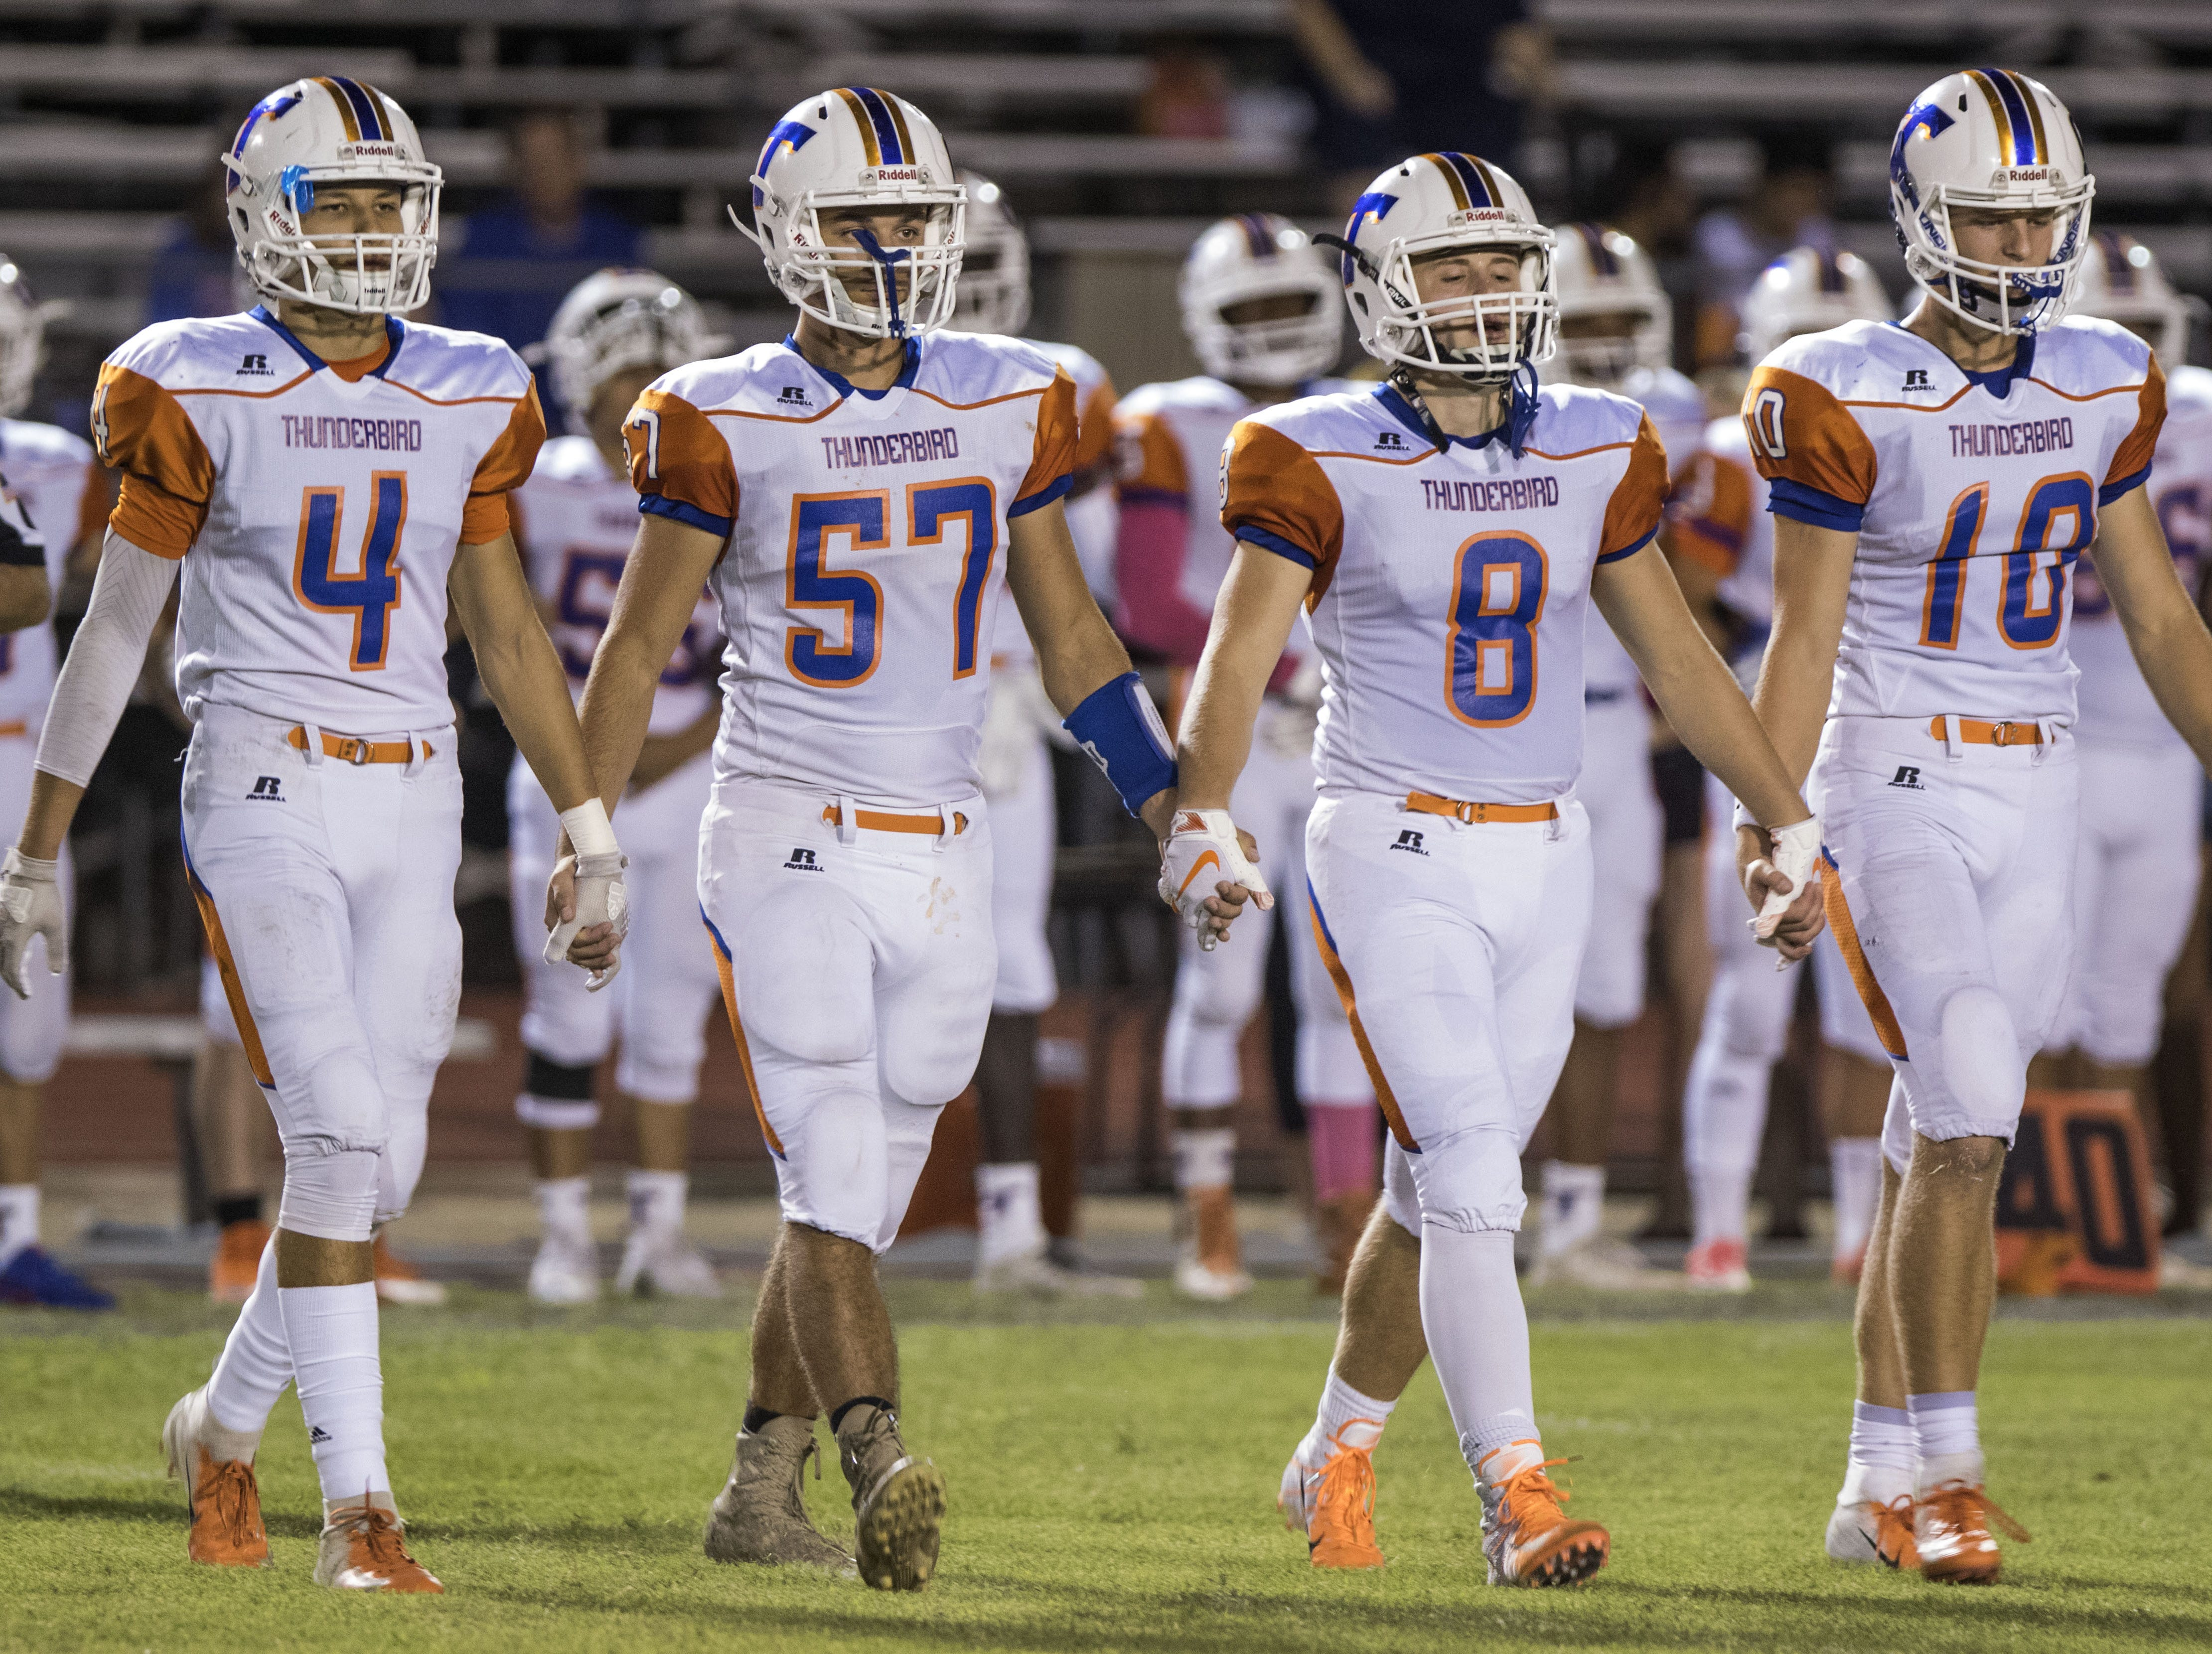 Thunderbird captians Kyle Mitchell (4), Dominick Mcnutt (57), Kain Ream (8) and Trevor Messing (10) walk to the  the coin toss before their game with Washington in Phoenix Friday, Oct. 5, 2018. #azhsfb